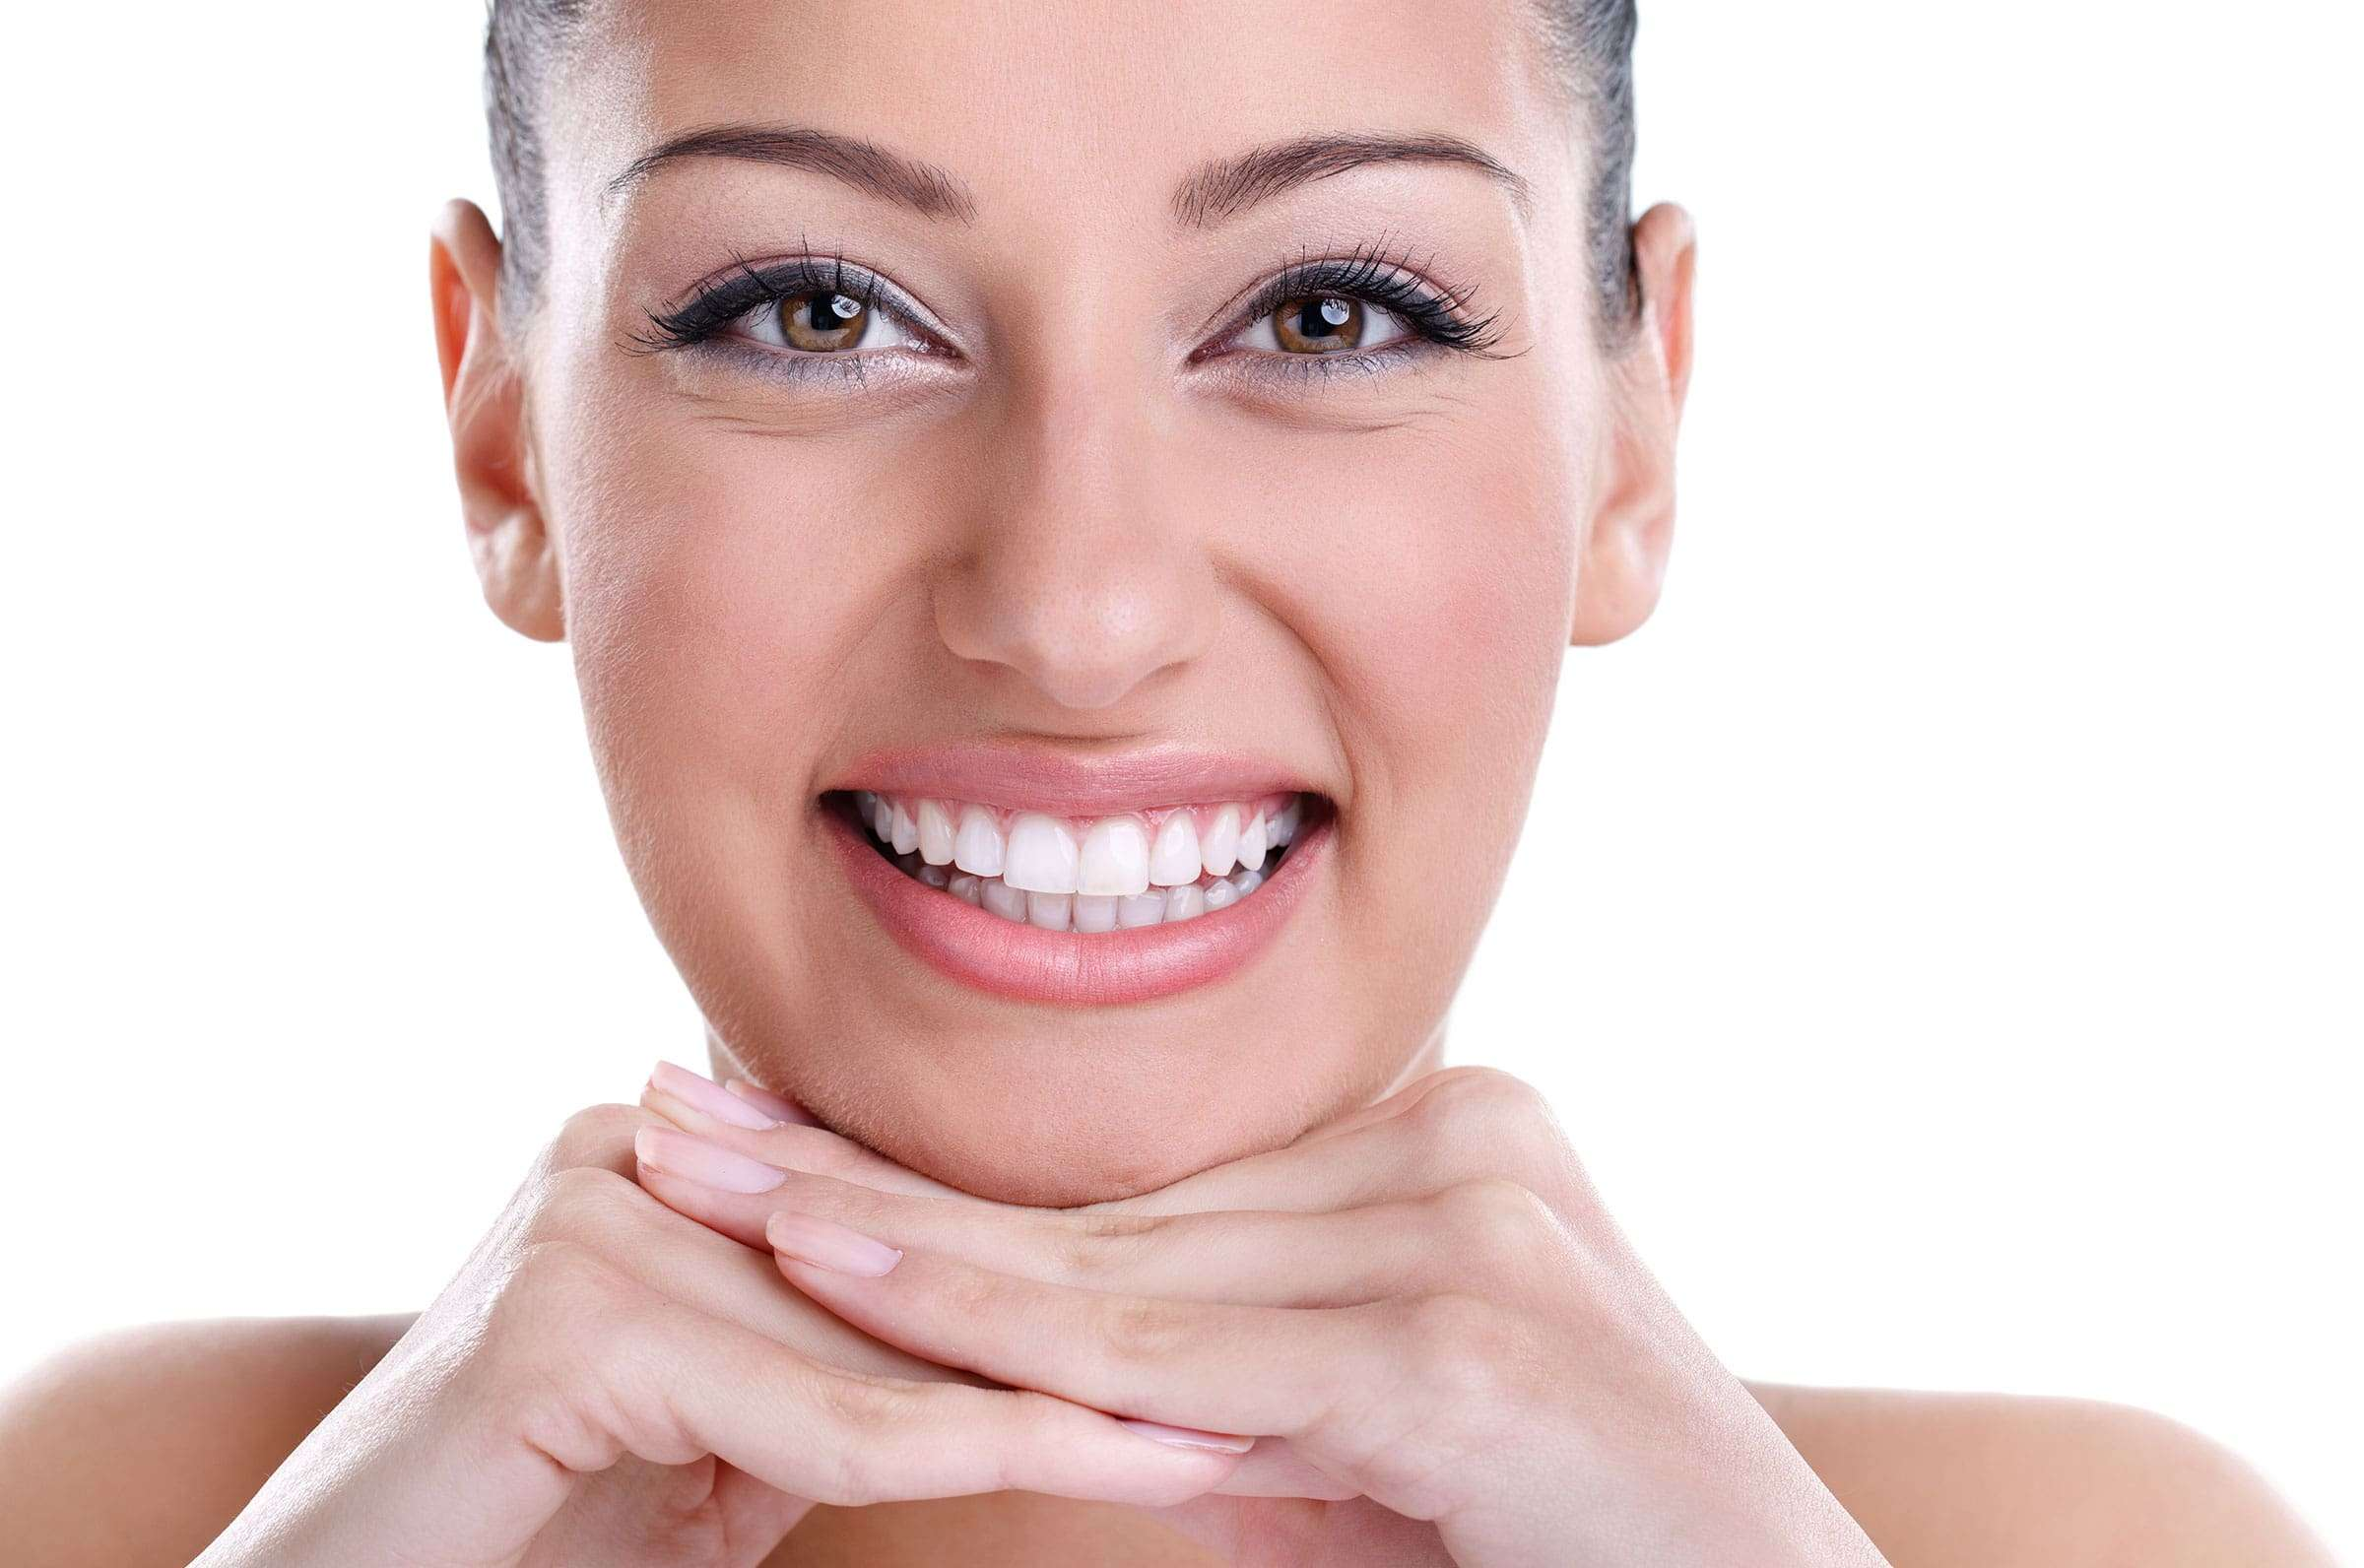 Save Your Smile with Cosmetic Dentistry